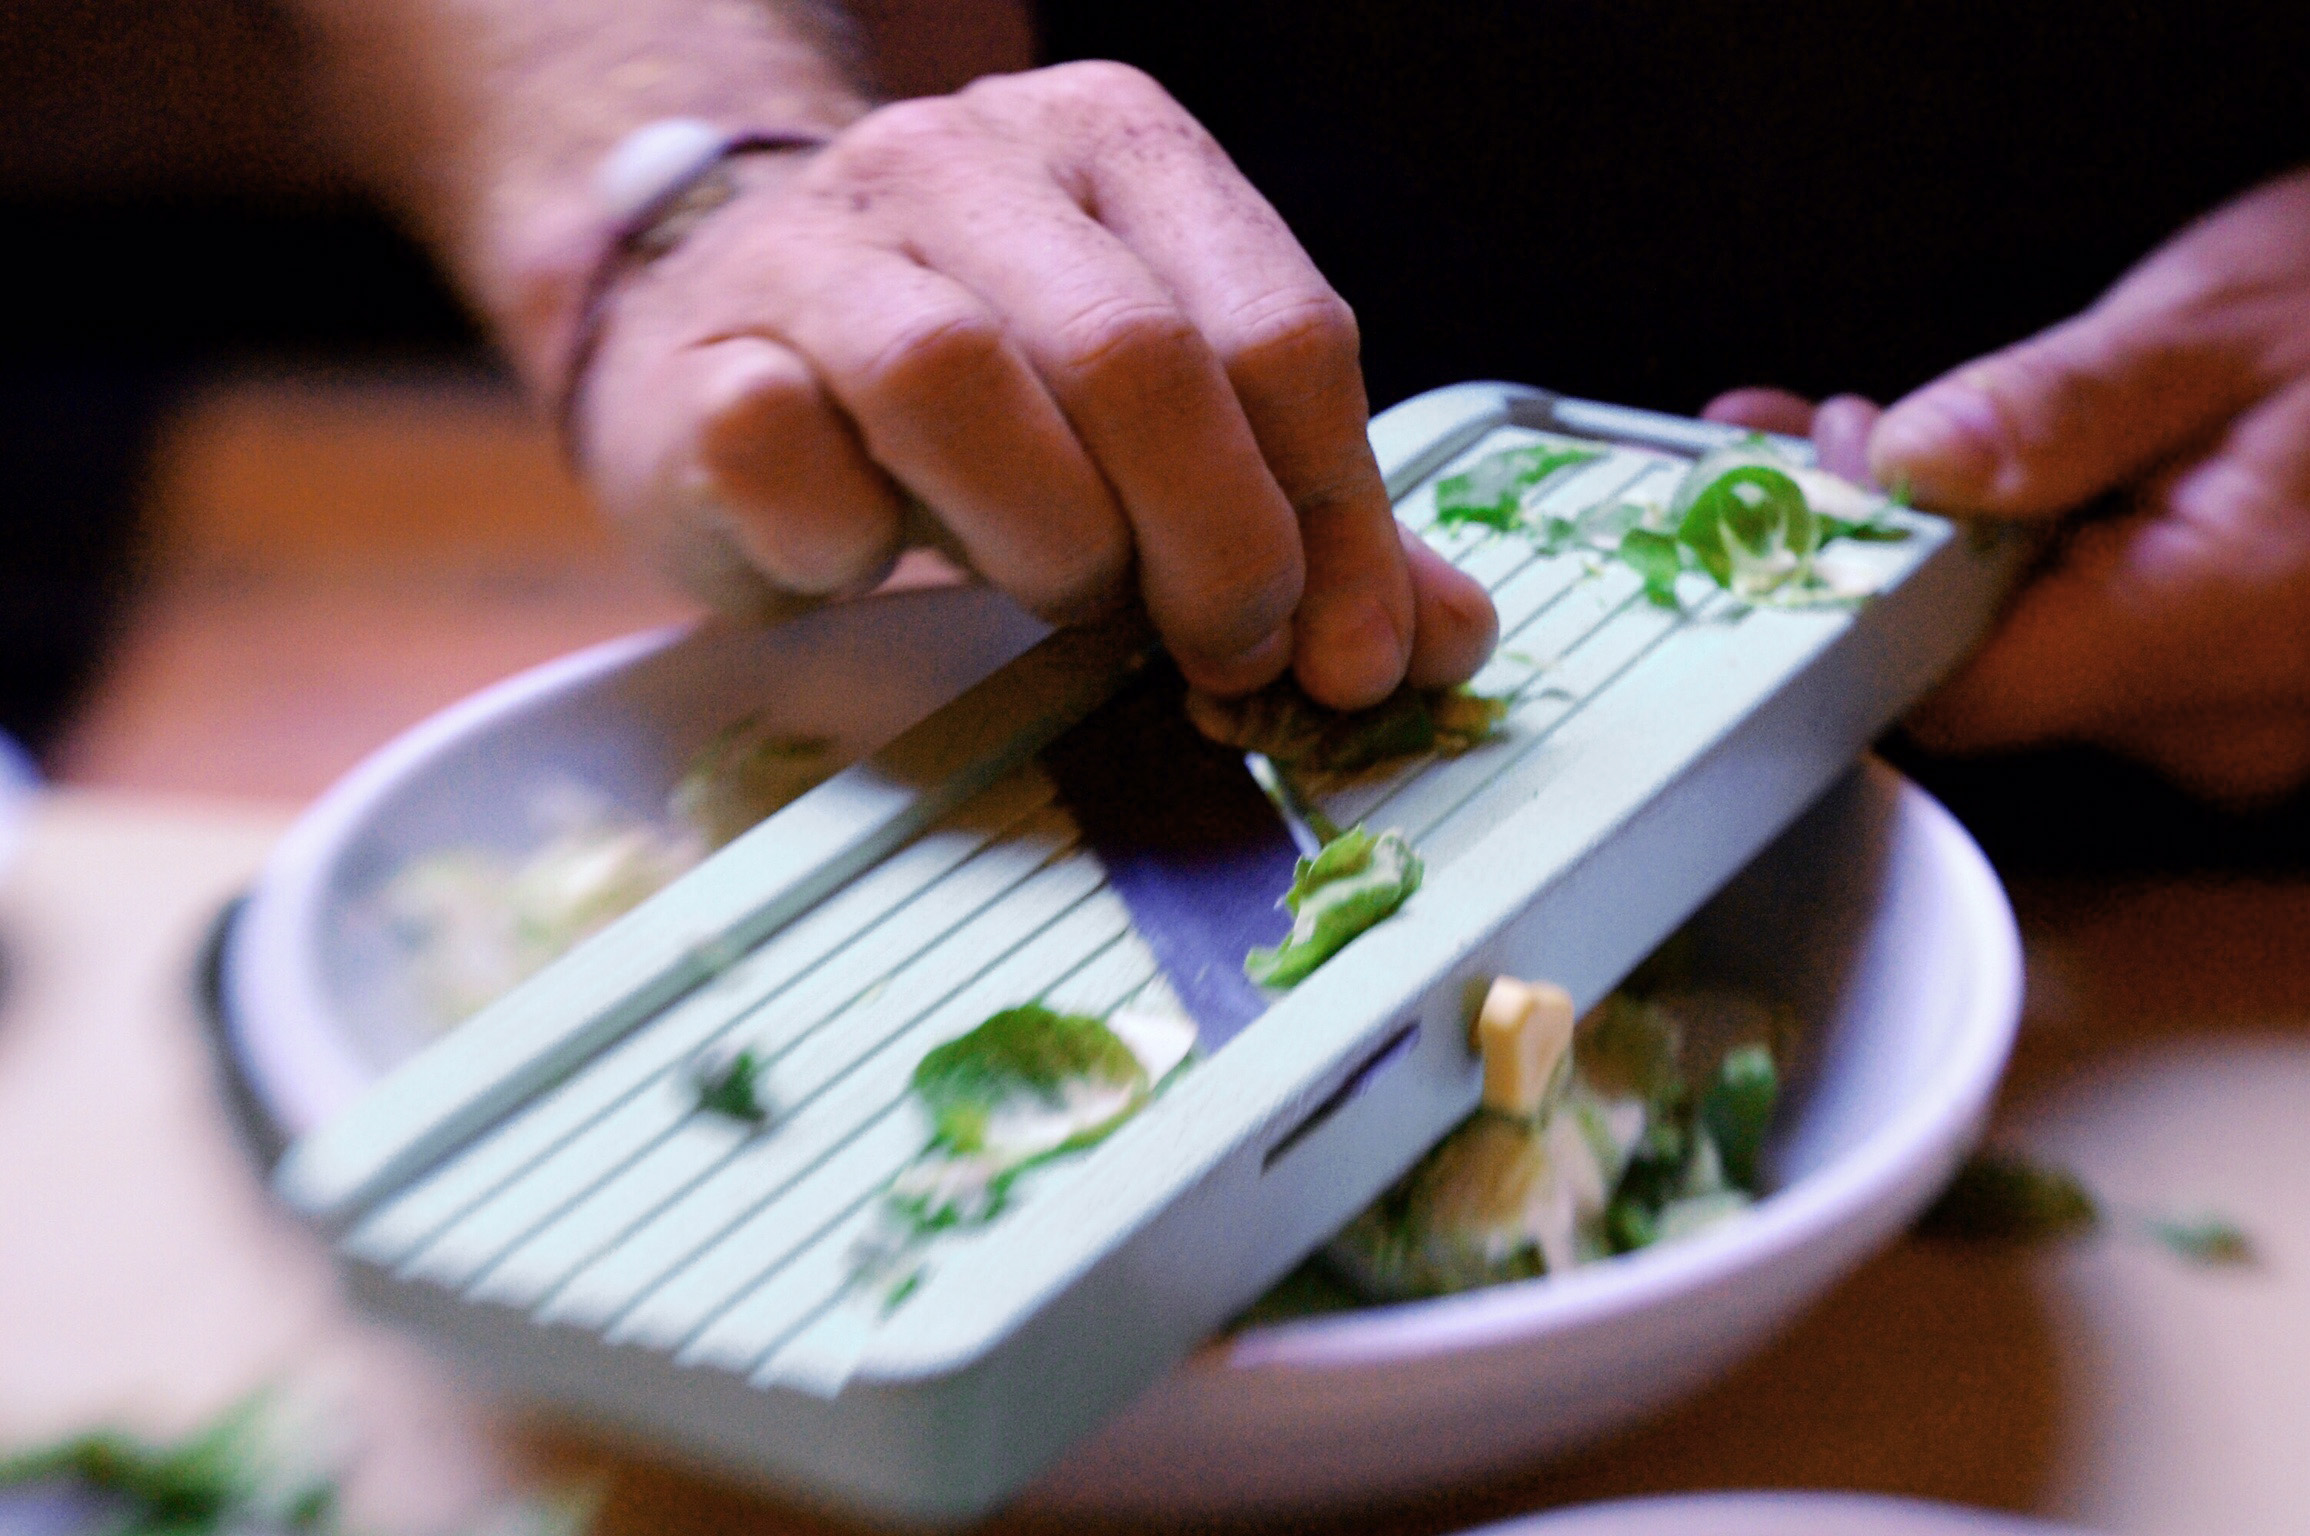 Shaving brussels sprouts with a mandoline